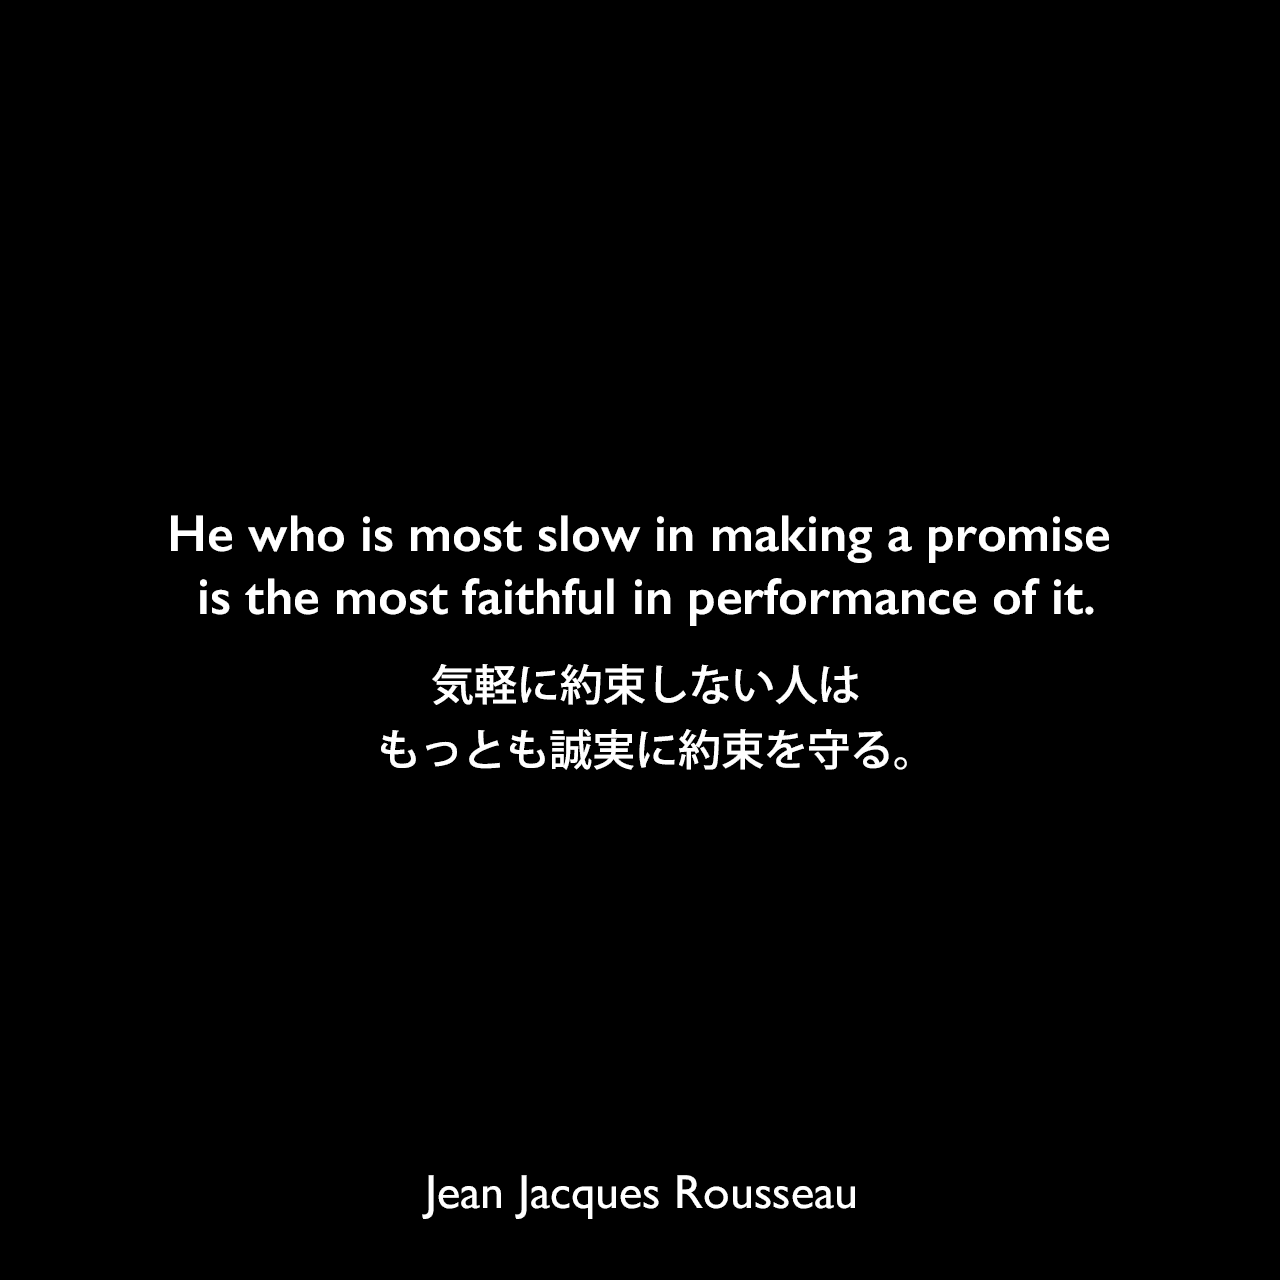 He who is most slow in making a promise is the most faithful in performance of it.気軽に約束しない人は、もっとも誠実に約束を守る。Jean Jacques Rousseau